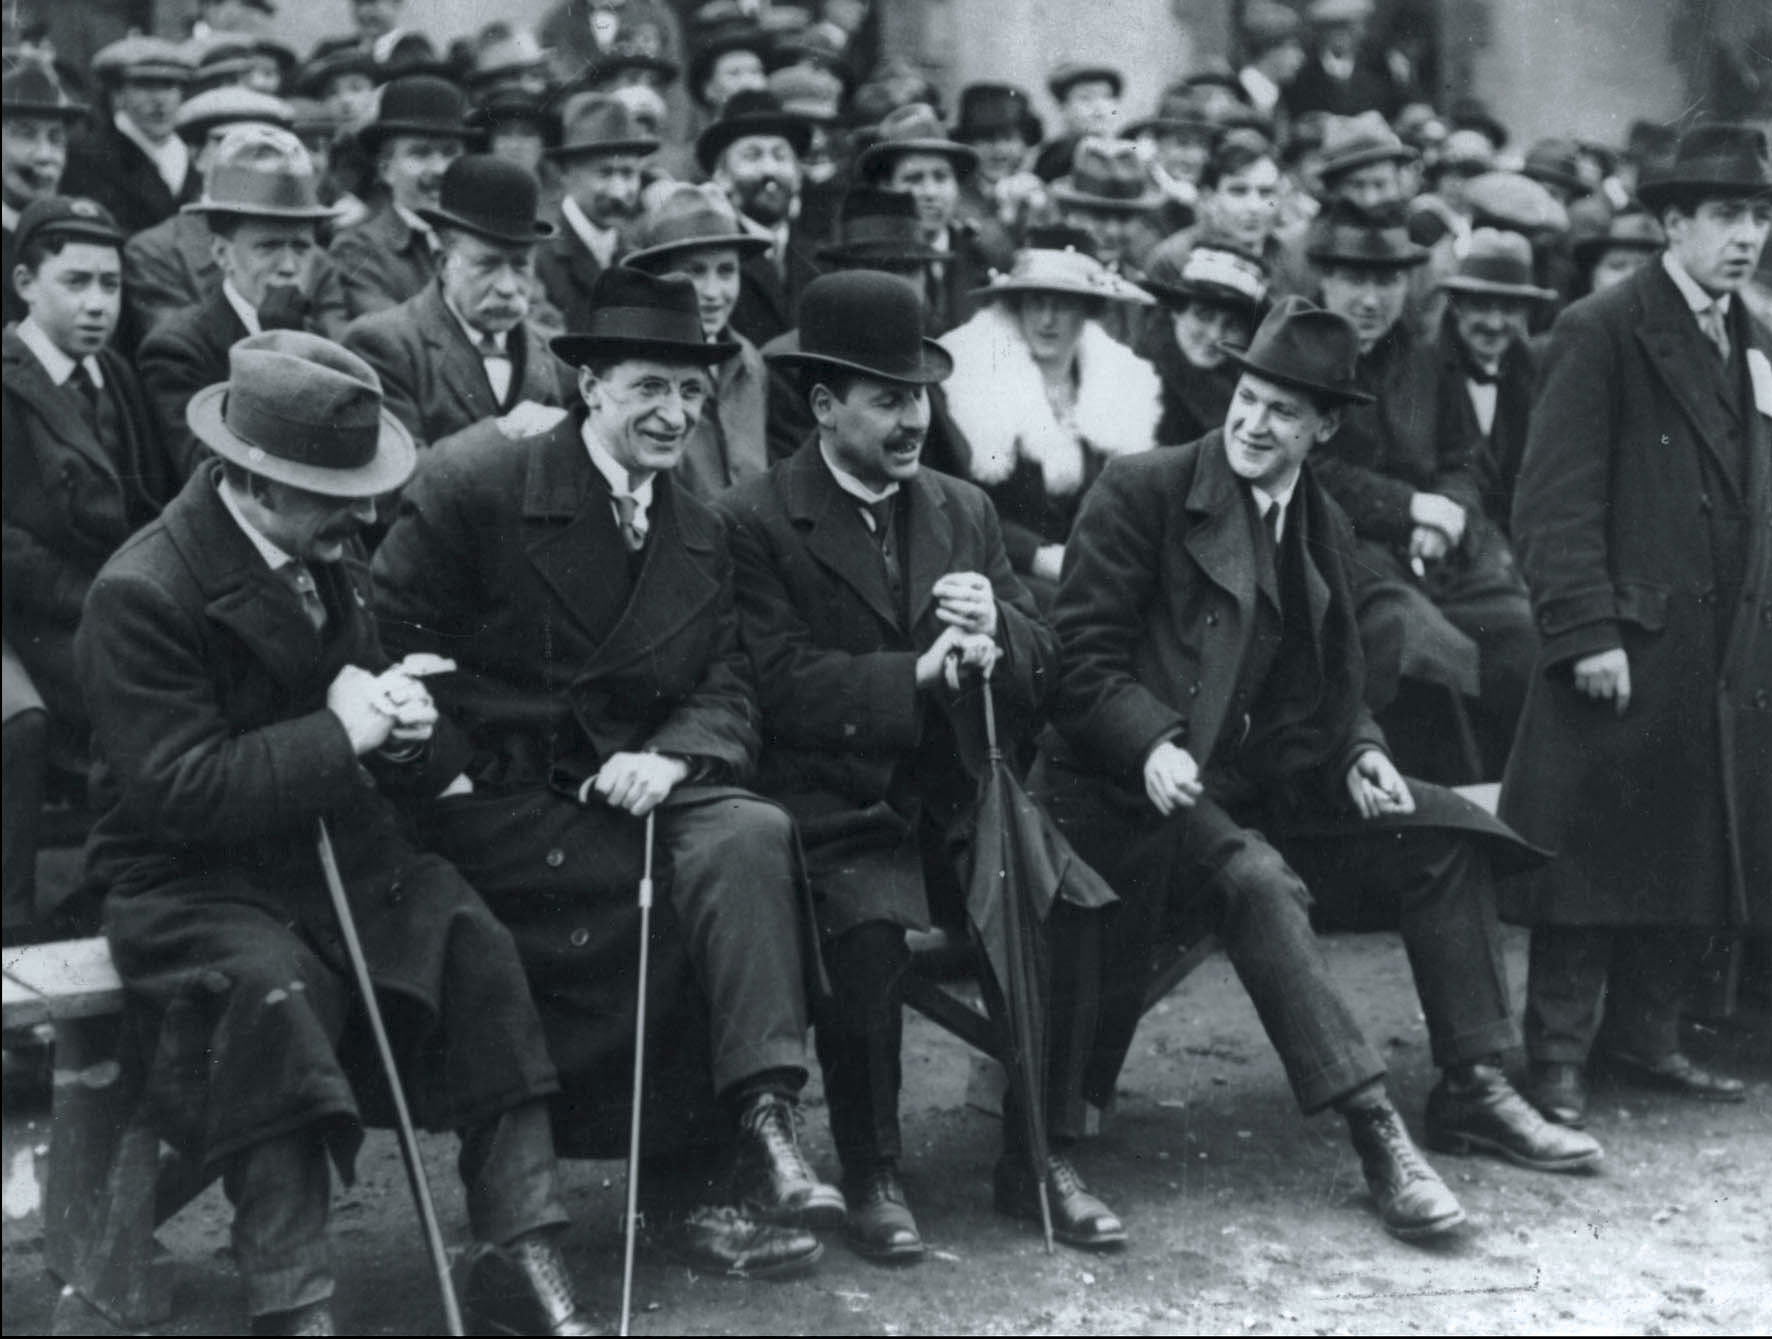 From left, Arthur Griffith, Eamon de Valera, Laurence O'Neill, and Collins at Croke Park, 1921.